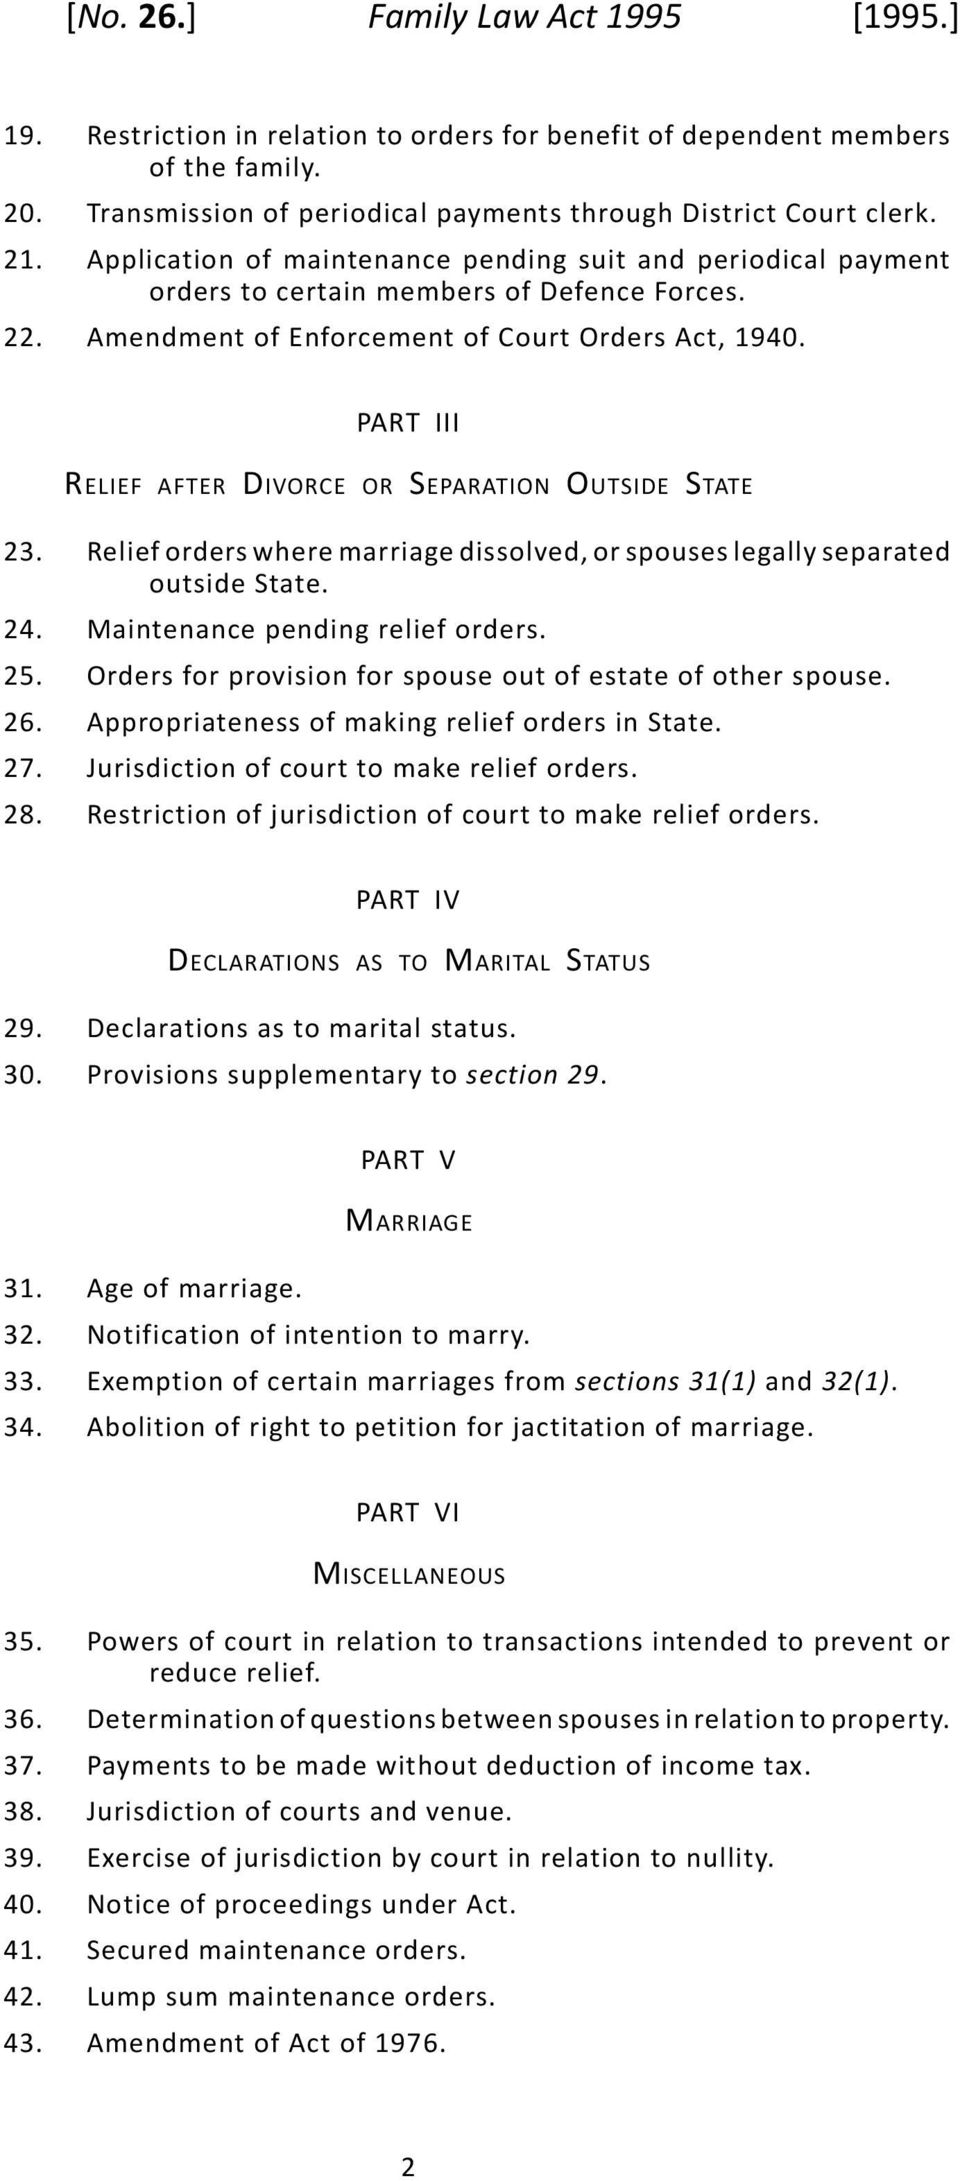 PART III RELIEF AFTER DIVORCE OR SEPARATION OUTSIDE STATE 23. 24. 25. 26. 27. 28. Relief orders where marriage dissolved, or spouses legally separated outside State. Maintenance pending relief orders.